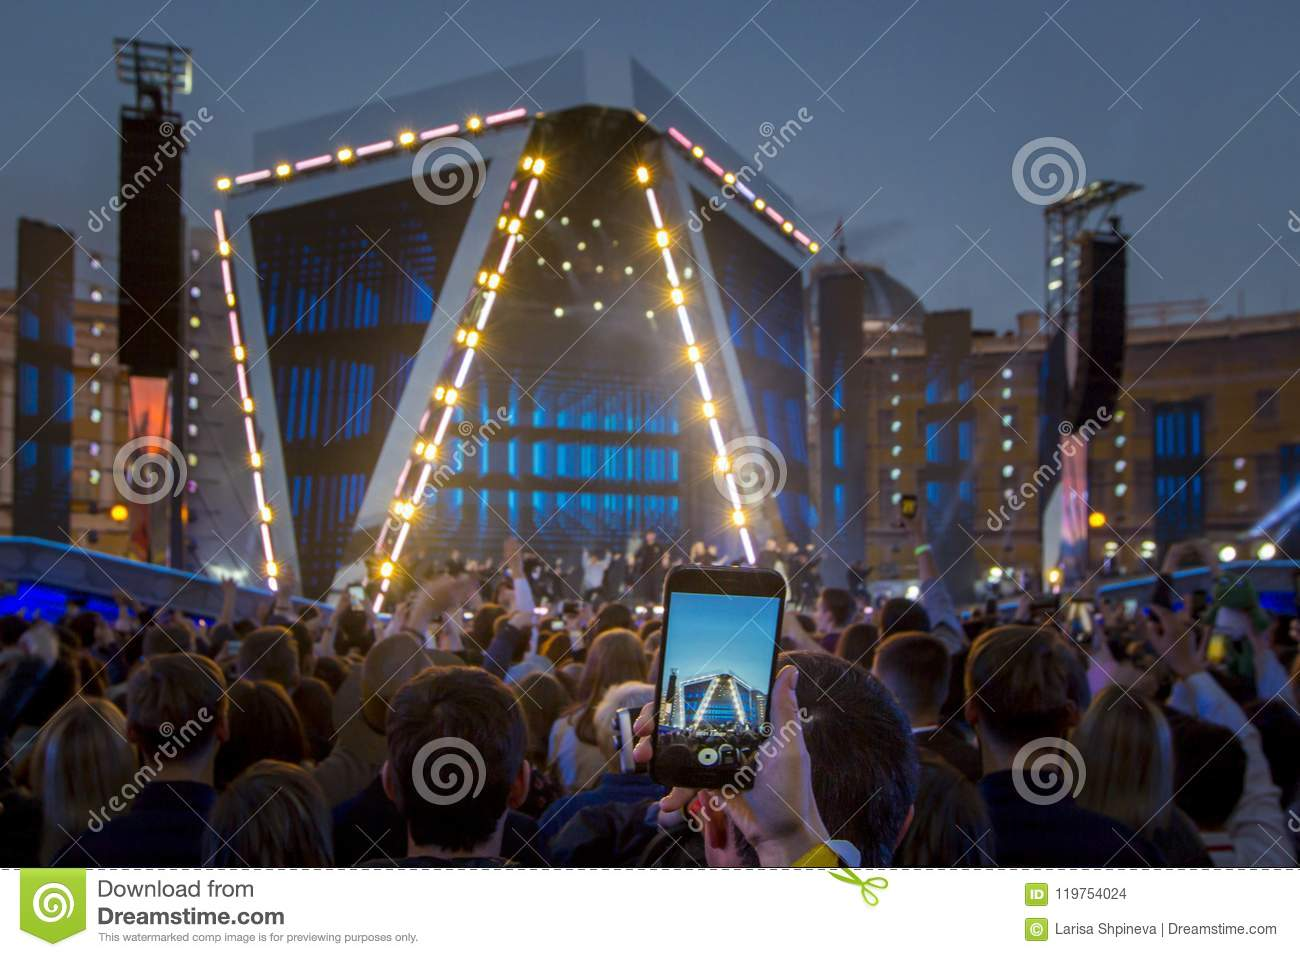 Hand with smartphone recording video / photo at live music concert, silhouettes of crowd in front of bright stage lights.